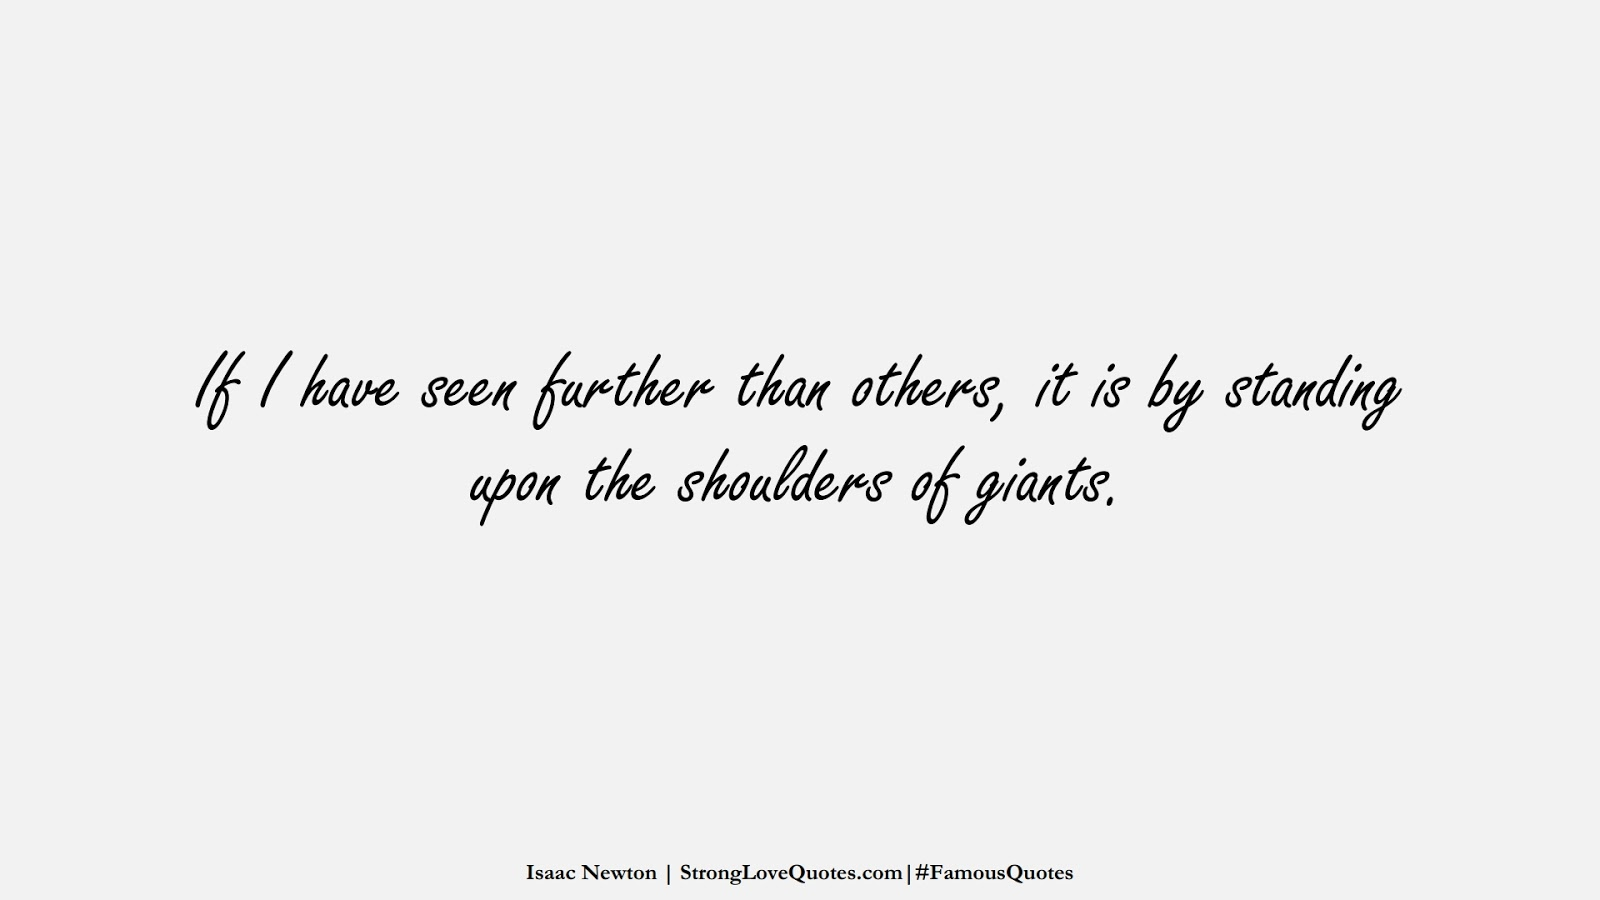 If I have seen further than others, it is by standing upon the shoulders of giants. (Isaac Newton);  #FamousQuotes